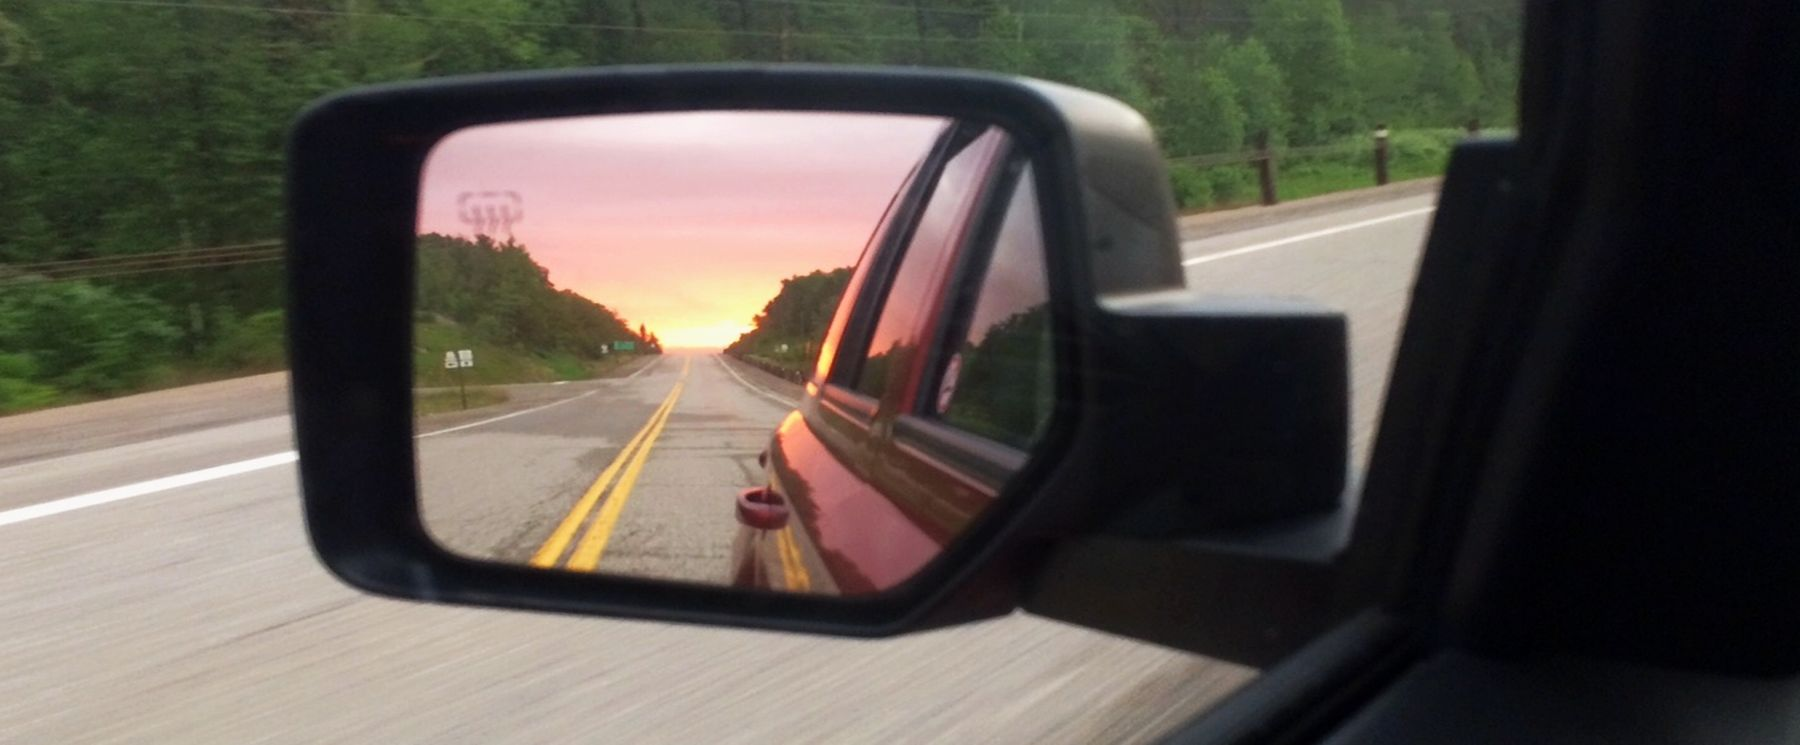 view of northern highway in a rear view mirror